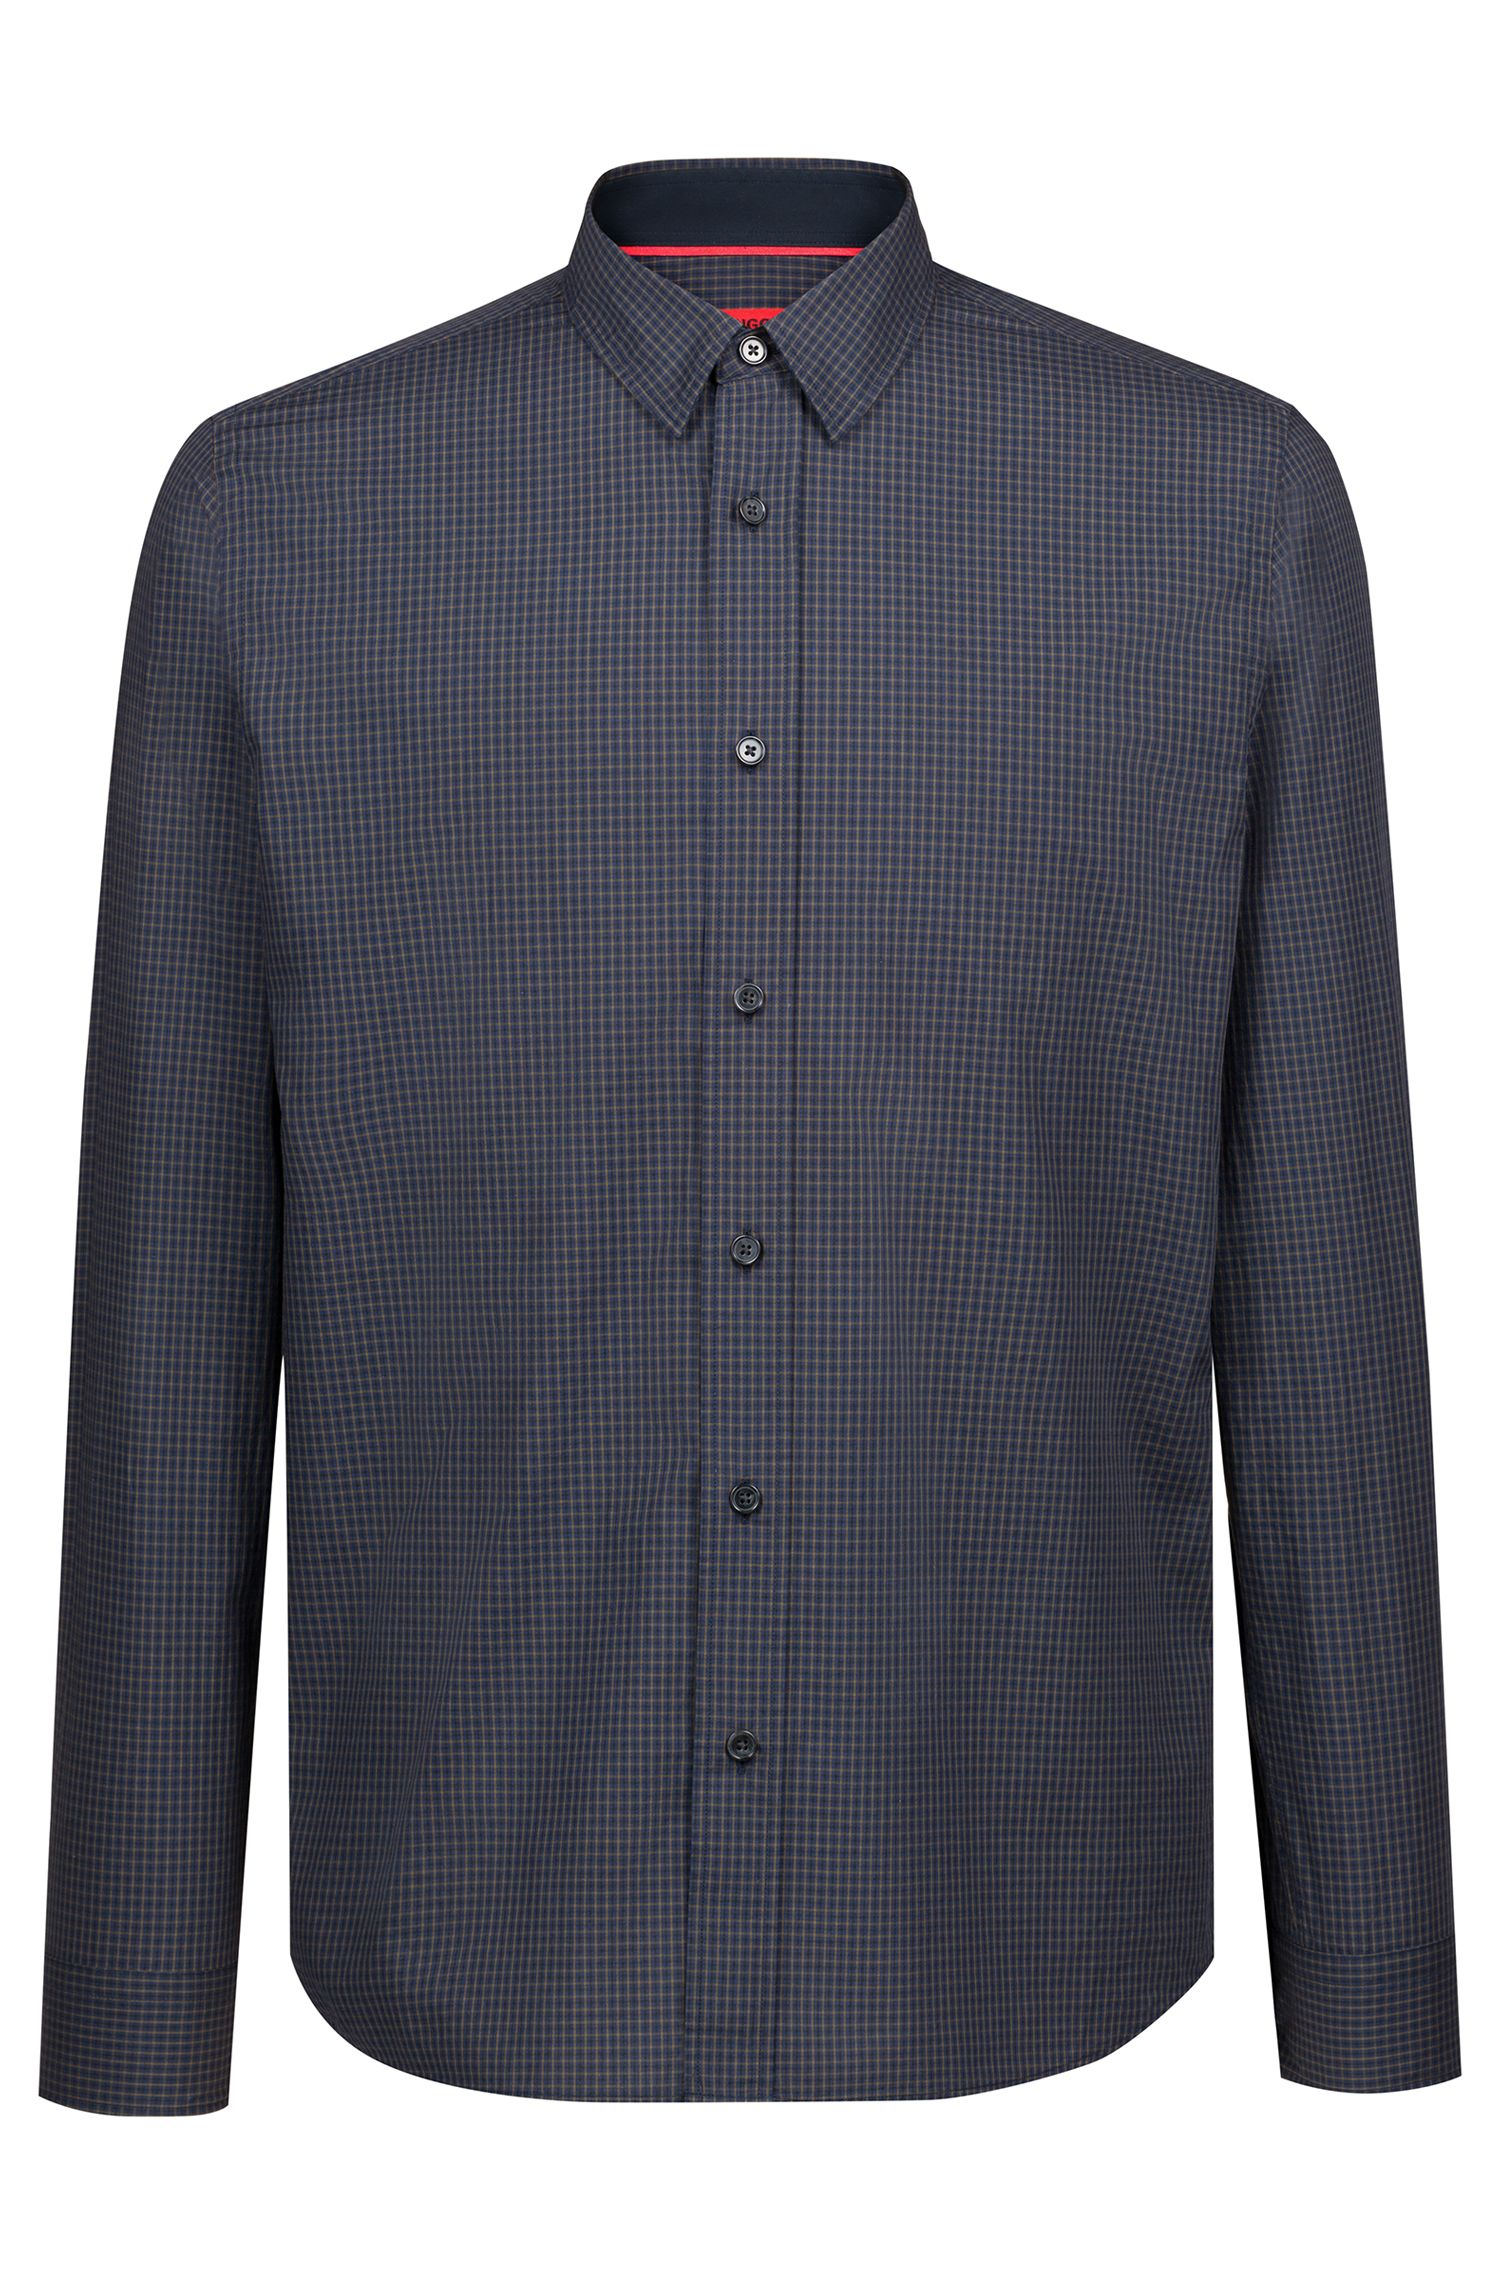 Relaxed-fit shirt in cotton tweed with heathered check pattern